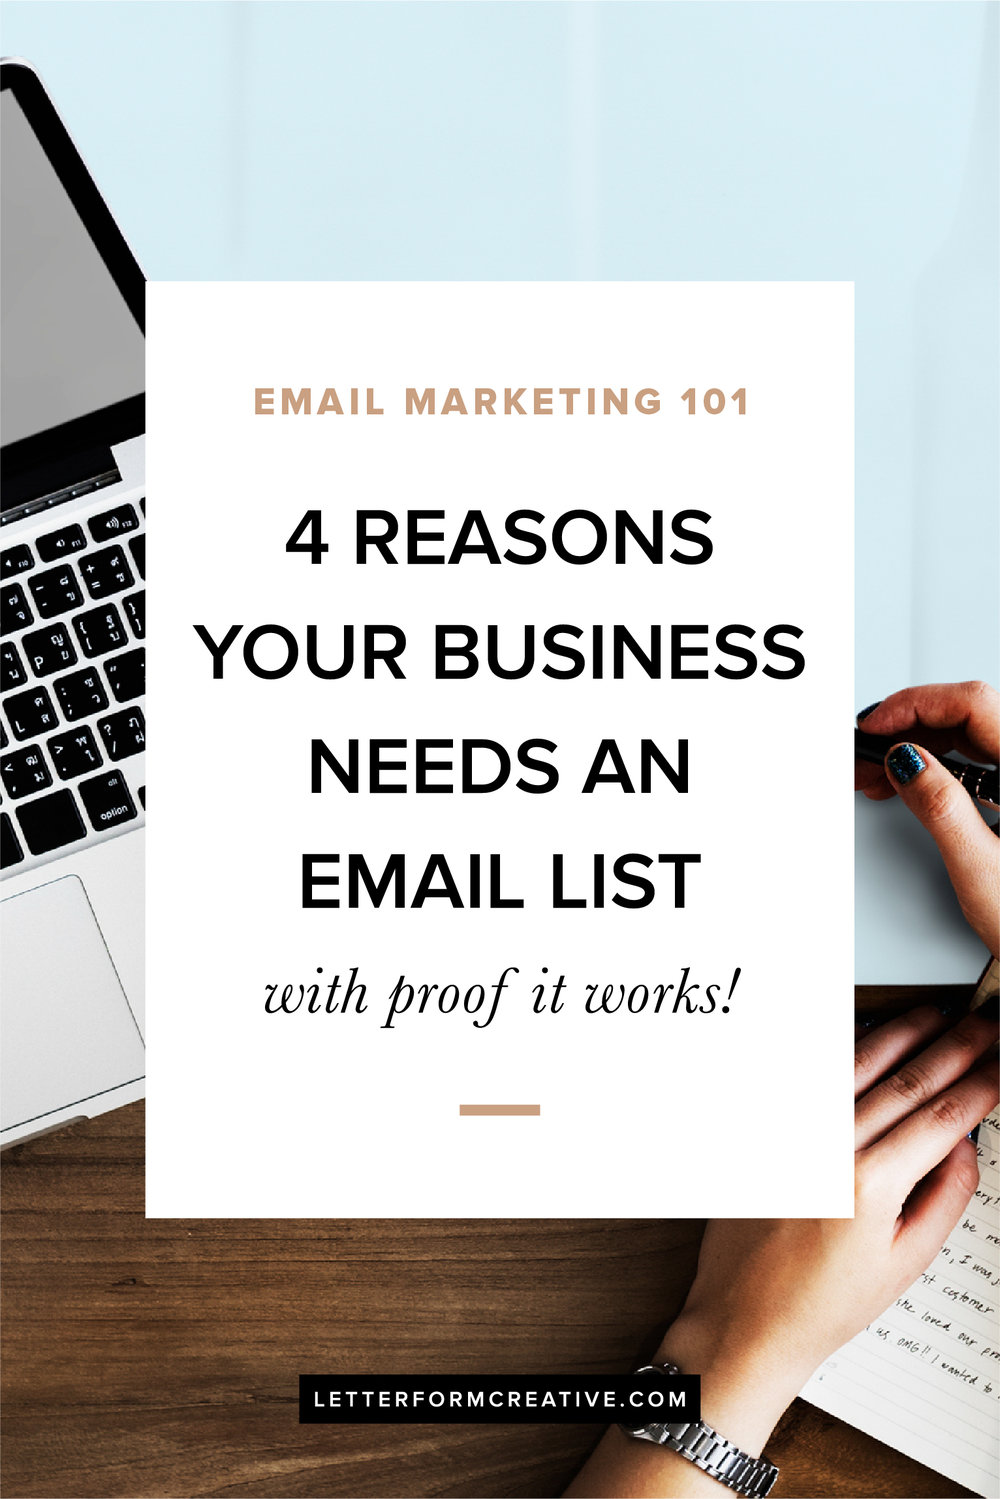 Hey small business owner, are you wondering if your business needs an email list? The answer is yes! It doens't matter if you're service-based or product-based, Either way your business can benefit from email marketing! Read the top four reasons why you need to start building your email list, along with a little proof that it clearly works!